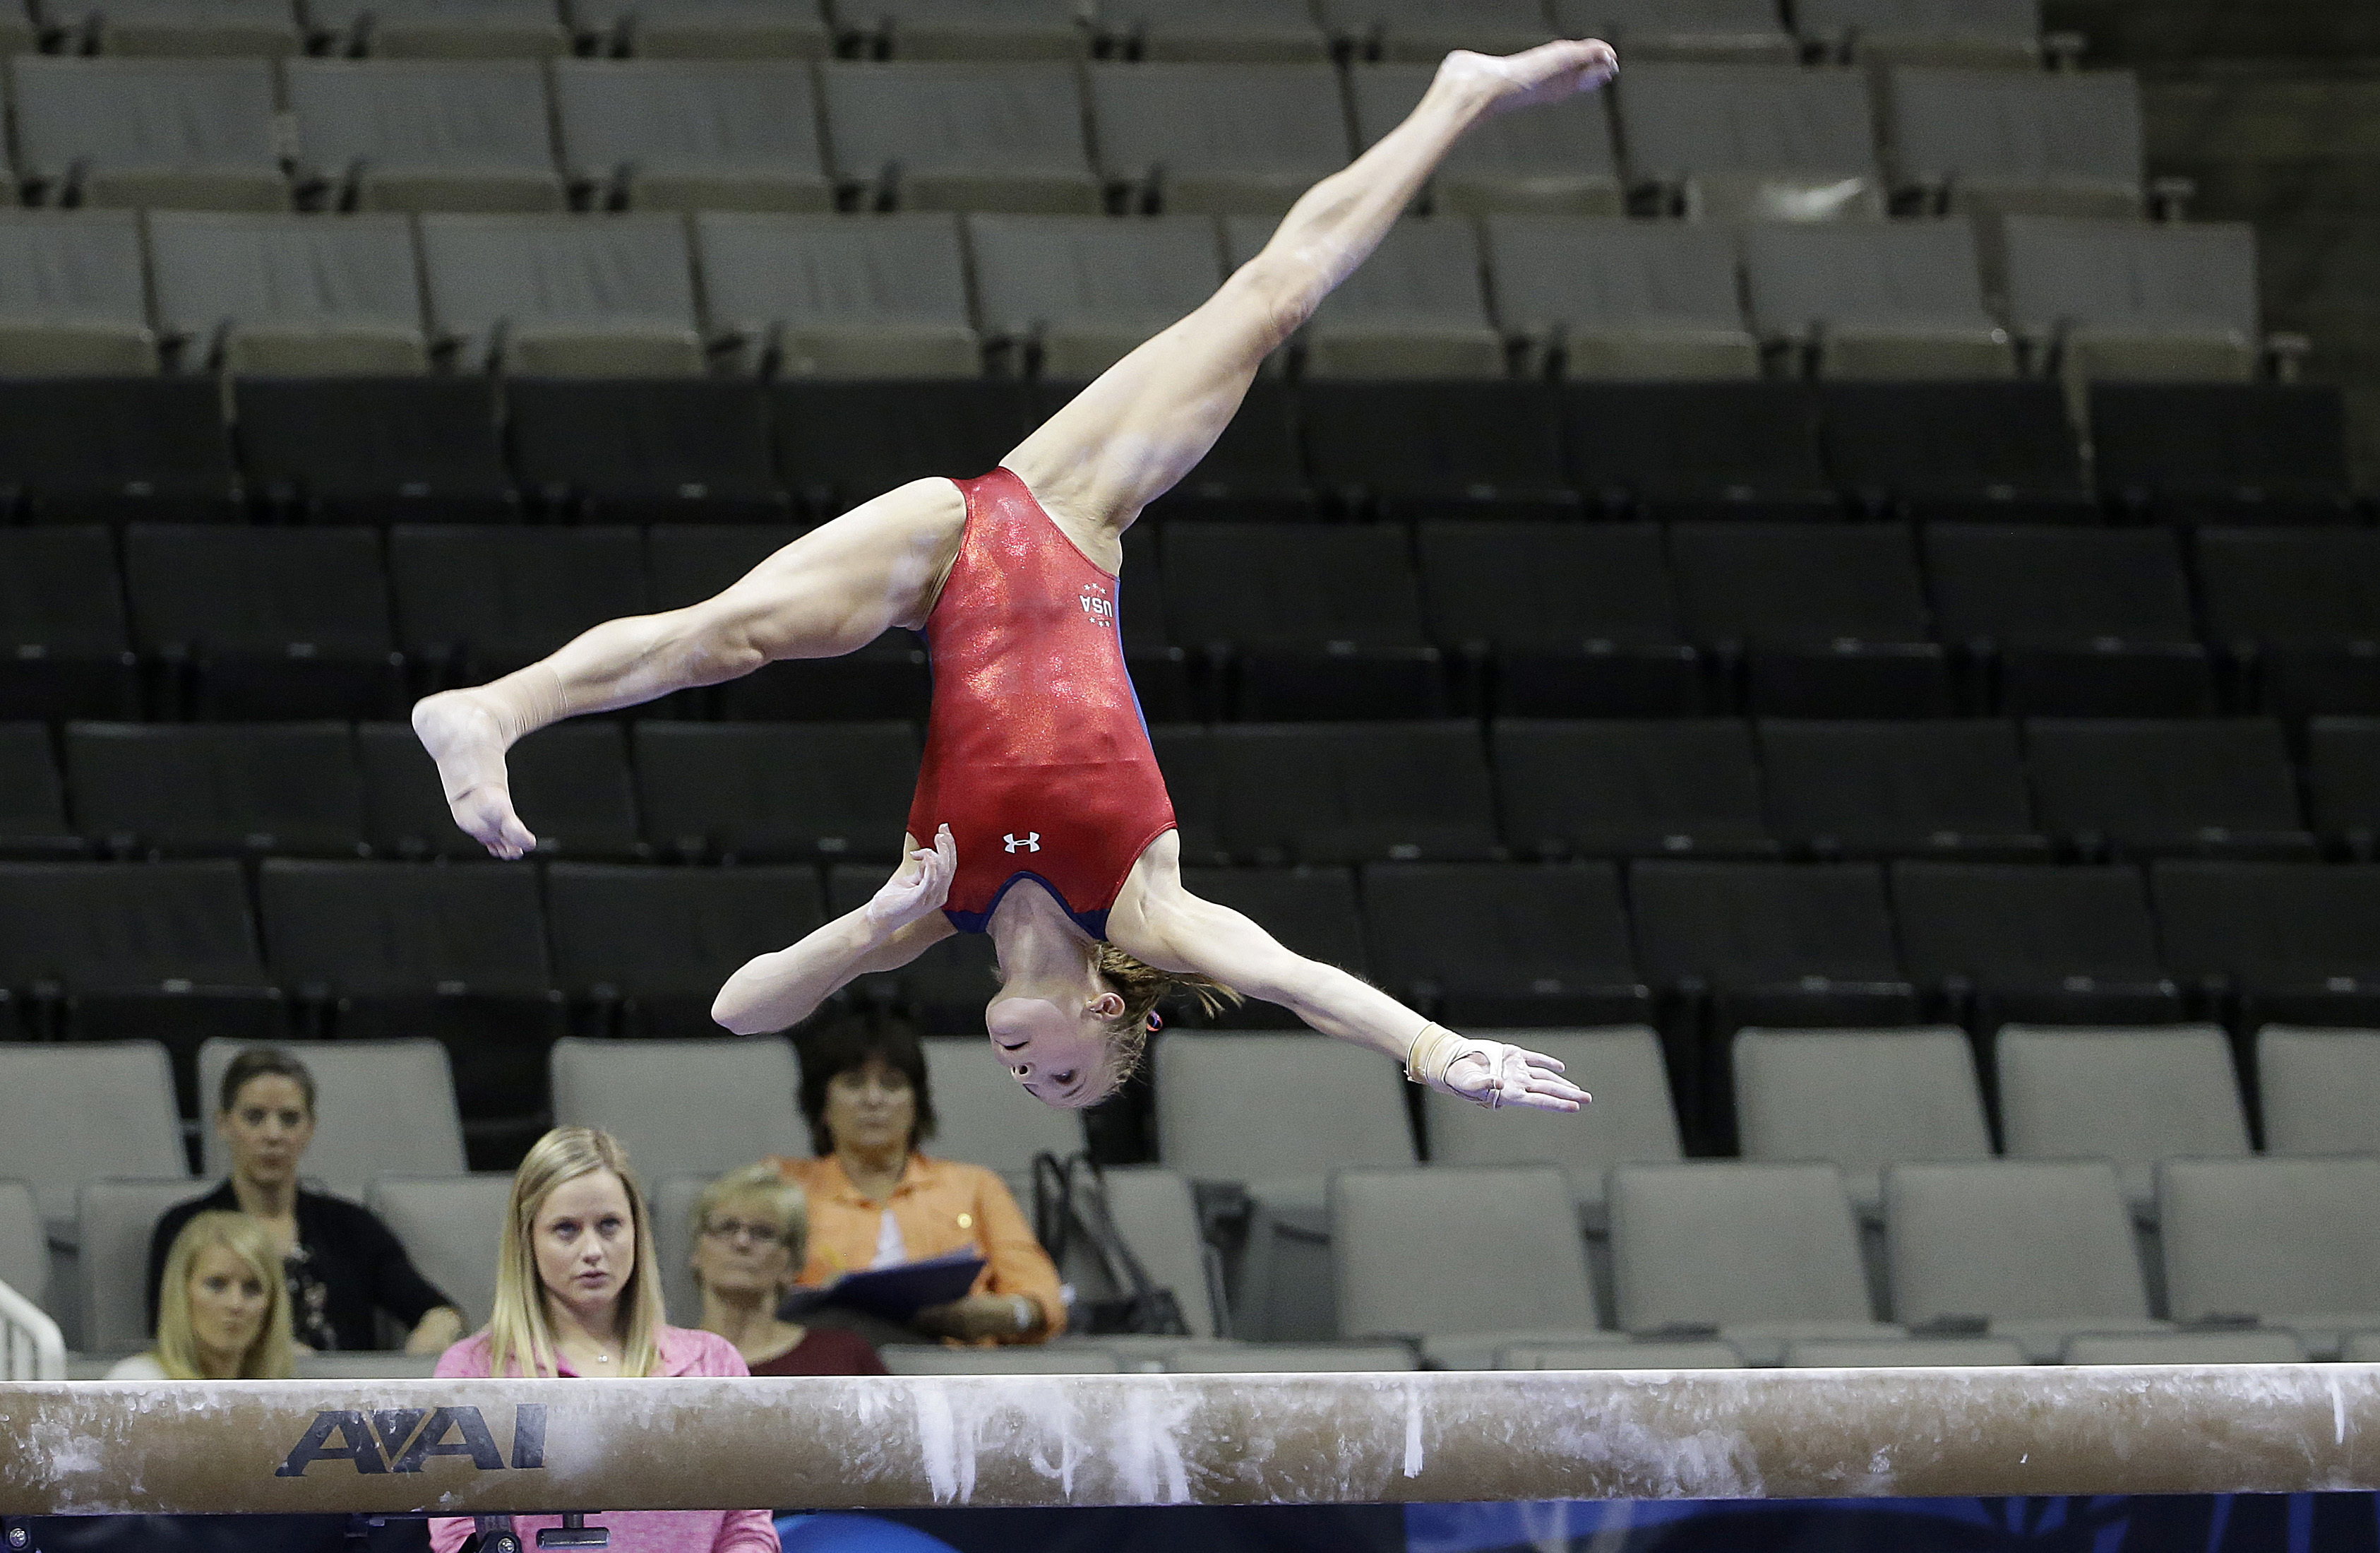 Madison Kocian performs on the balance beam during practice at the U.S. Olympic trials in gymnastics in San Jose, Calif., Thursday, July 7, 2016. (AP Photo/Jeff Chiu)